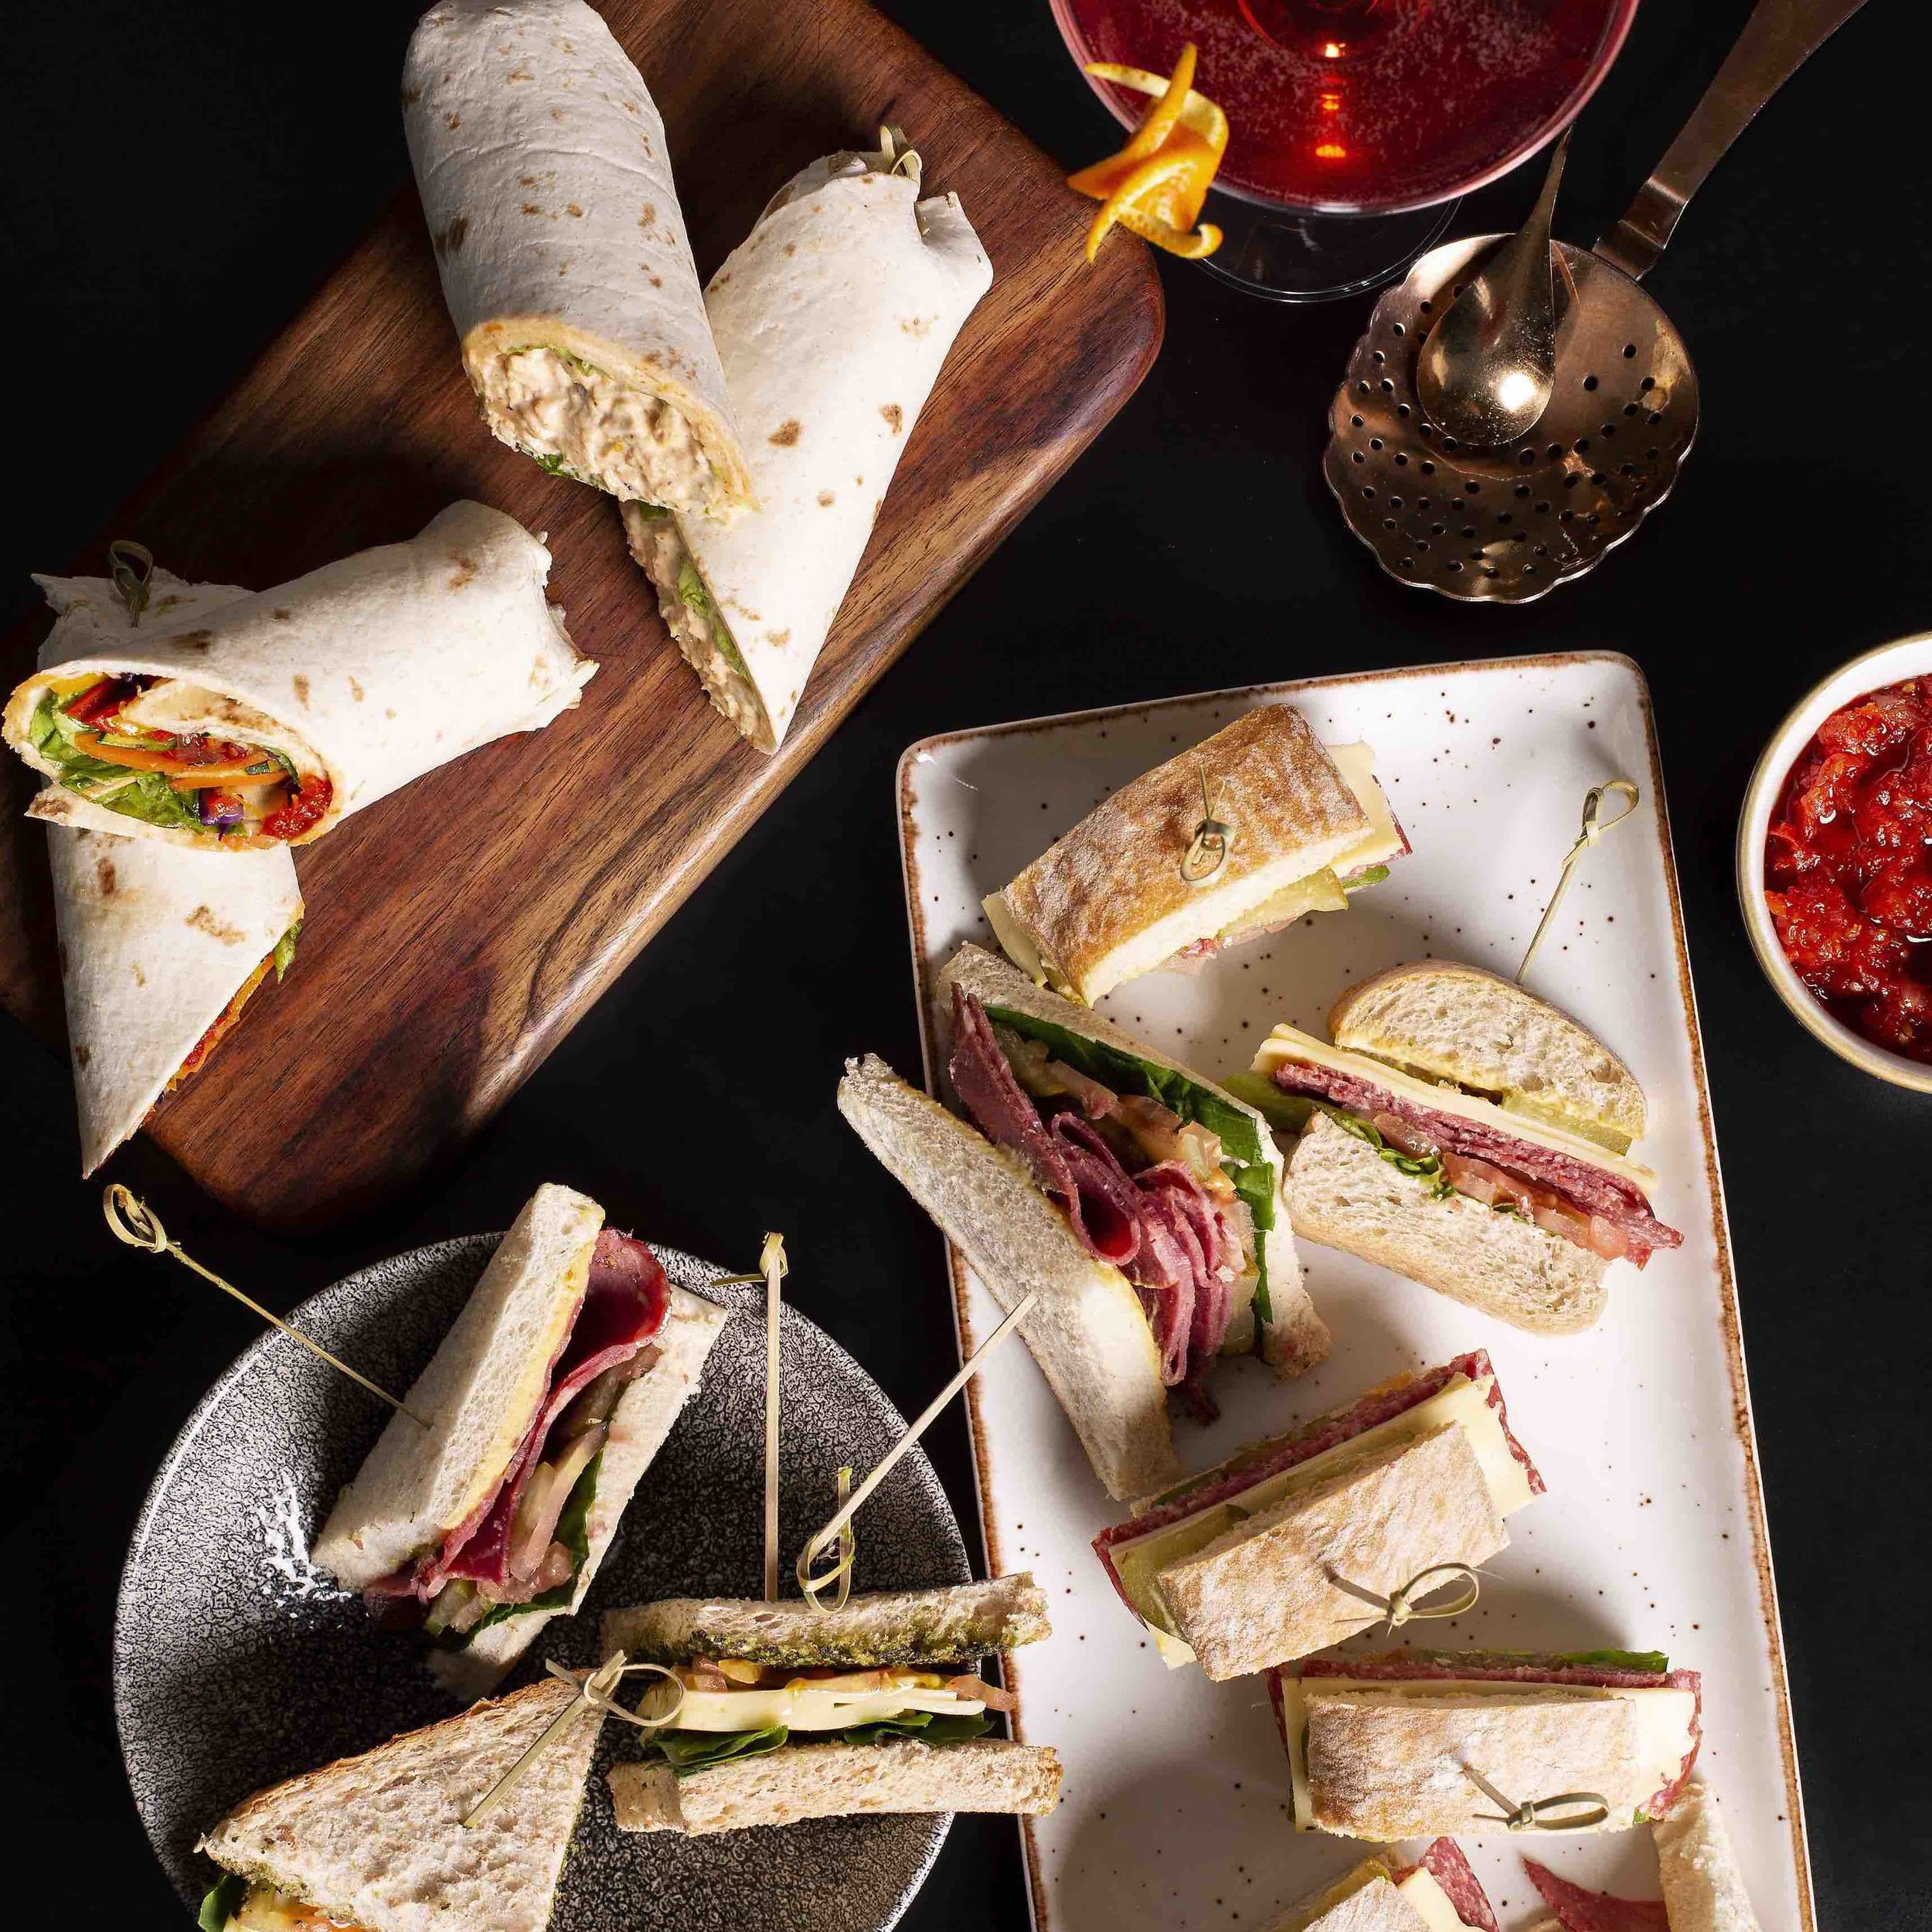 Sandwich PlatterR 580 – - Salami and white cheddar panini, spiced chicken and rocket wrap, mozzarella and tomato sandwiches with basil pesto, pastrami with mustard and pickles and Vegan grilled vegetable and baby spinach wraps with spicy tomato relish